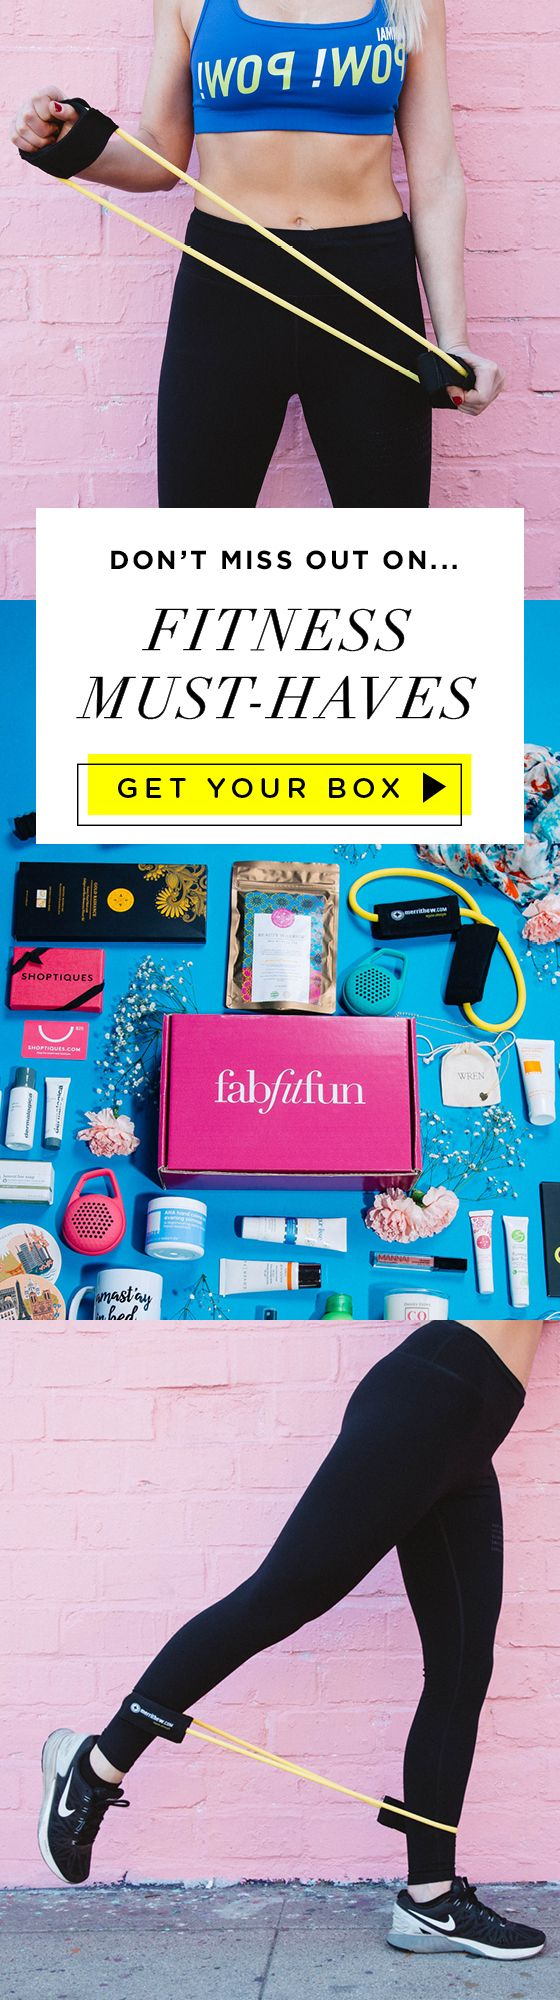 """Put the """"Fit"""" in your life with a box of FabFitFun! Treat yourself to one of our seasonal boxes to get $200+ of full-size fitness, beauty, and fashion products. It's everything you need to help you feel and look your best. Only $13.33 a month with code FITNESS"""